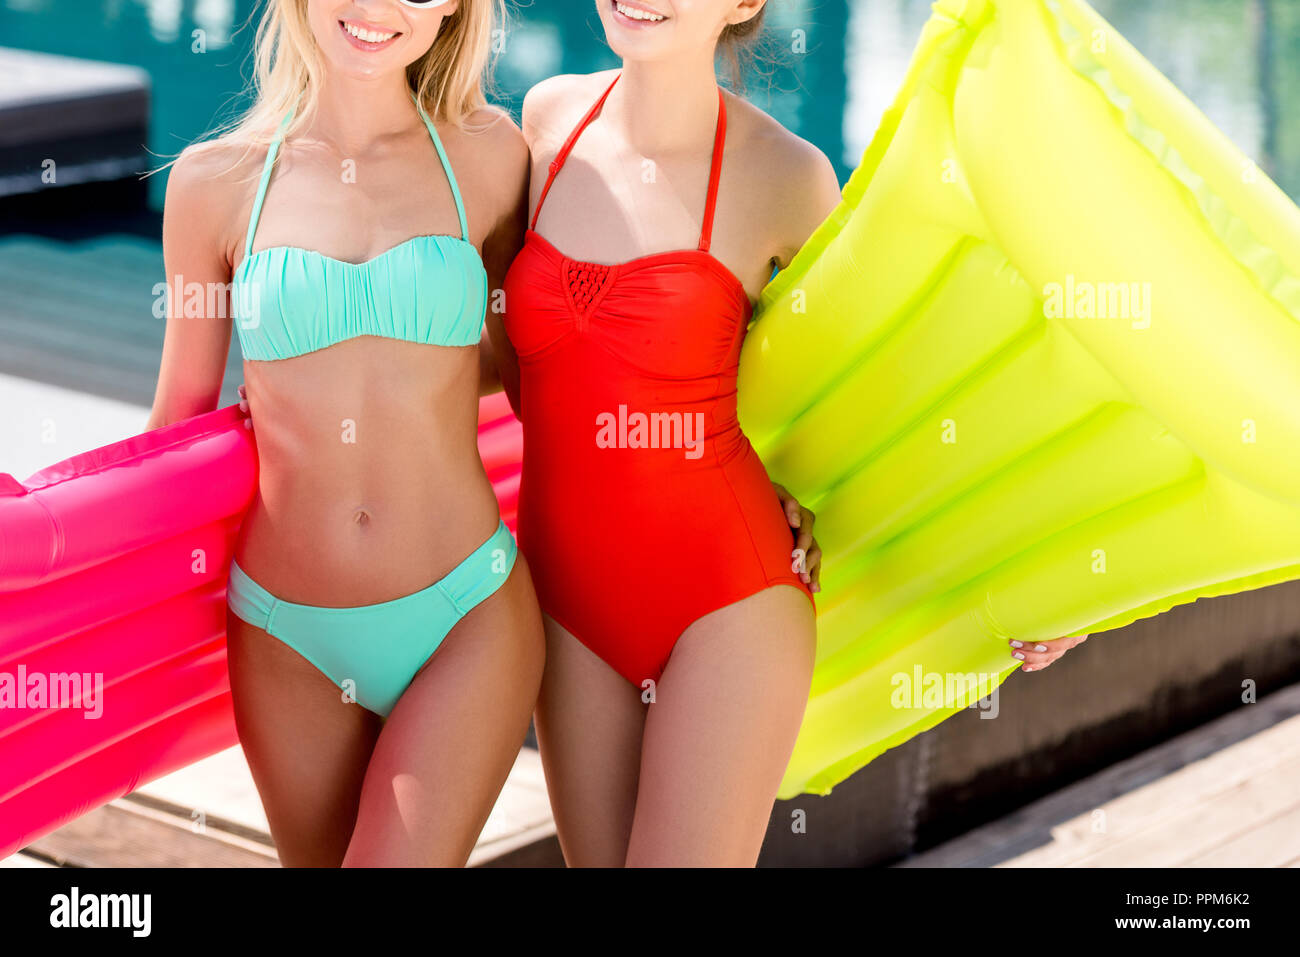 cropped shot of smiling young women with inflatable mattresses standing at poolside - Stock Image